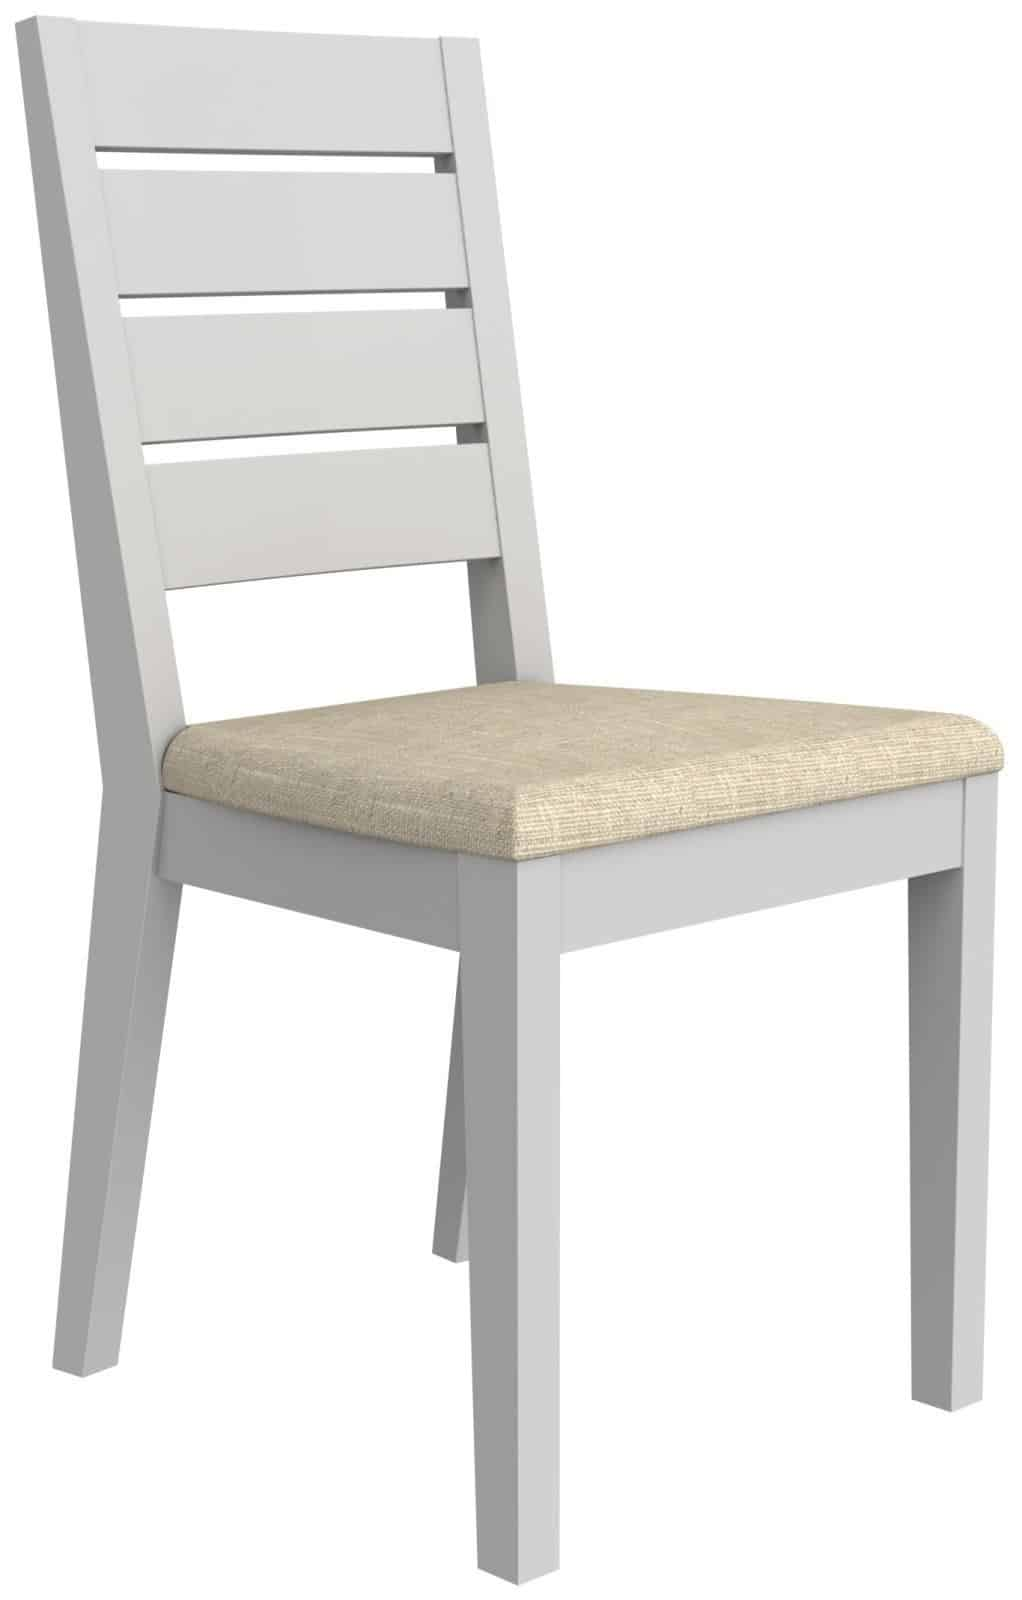 Bretagne Painted Dining Chair Pack Of 2 Fully Assembled Furniture Plus Online